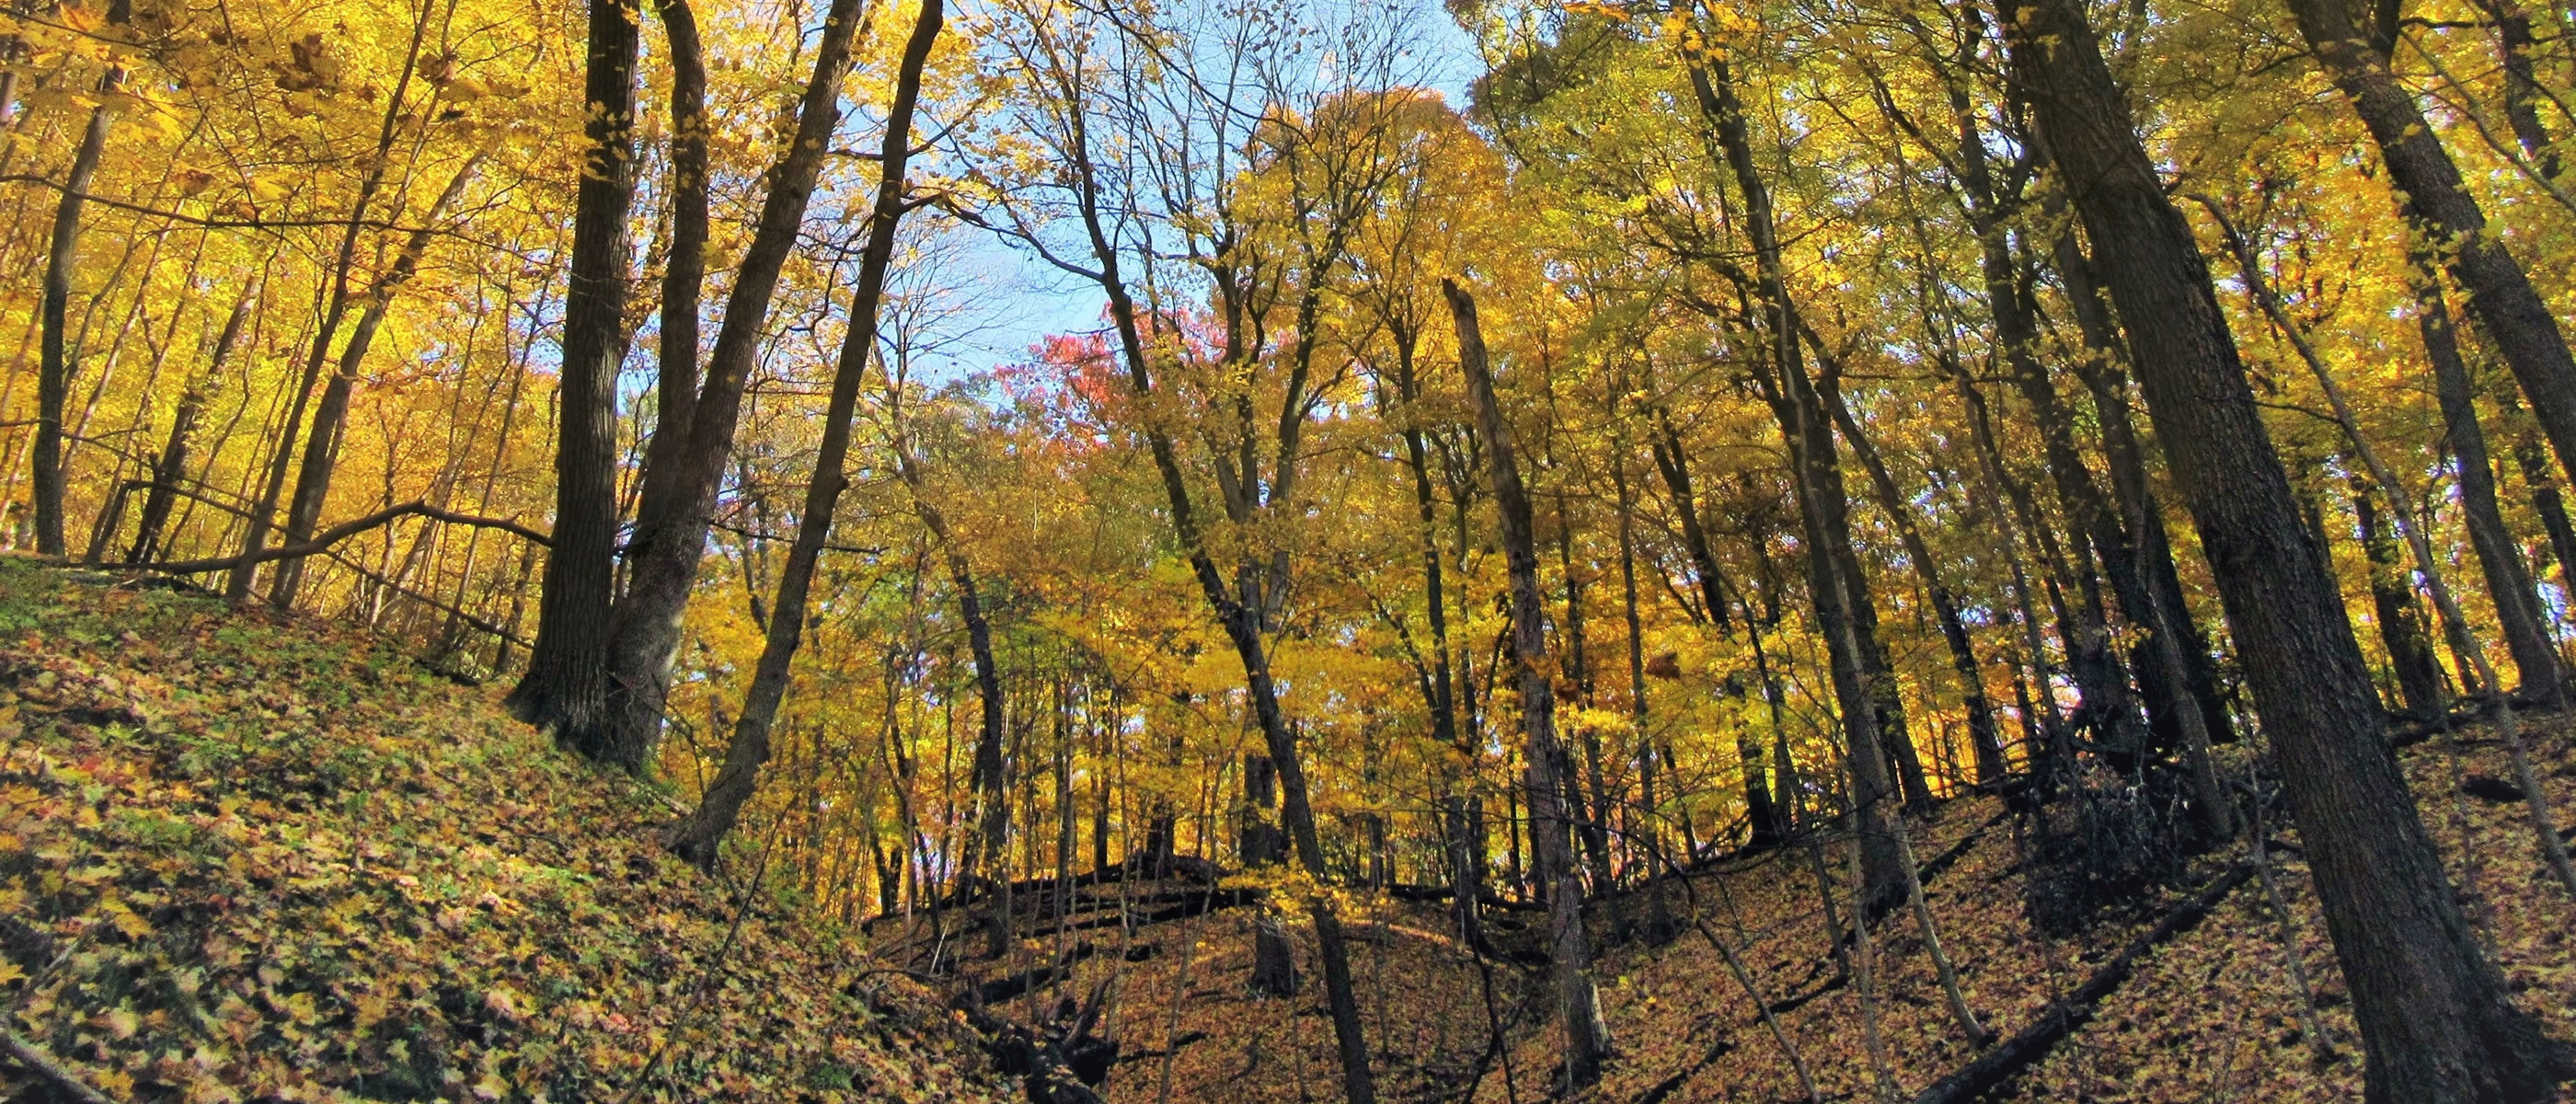 trees with leaves turning yellow and orange on the ravines at Paw Paw Woods Nature Preserve